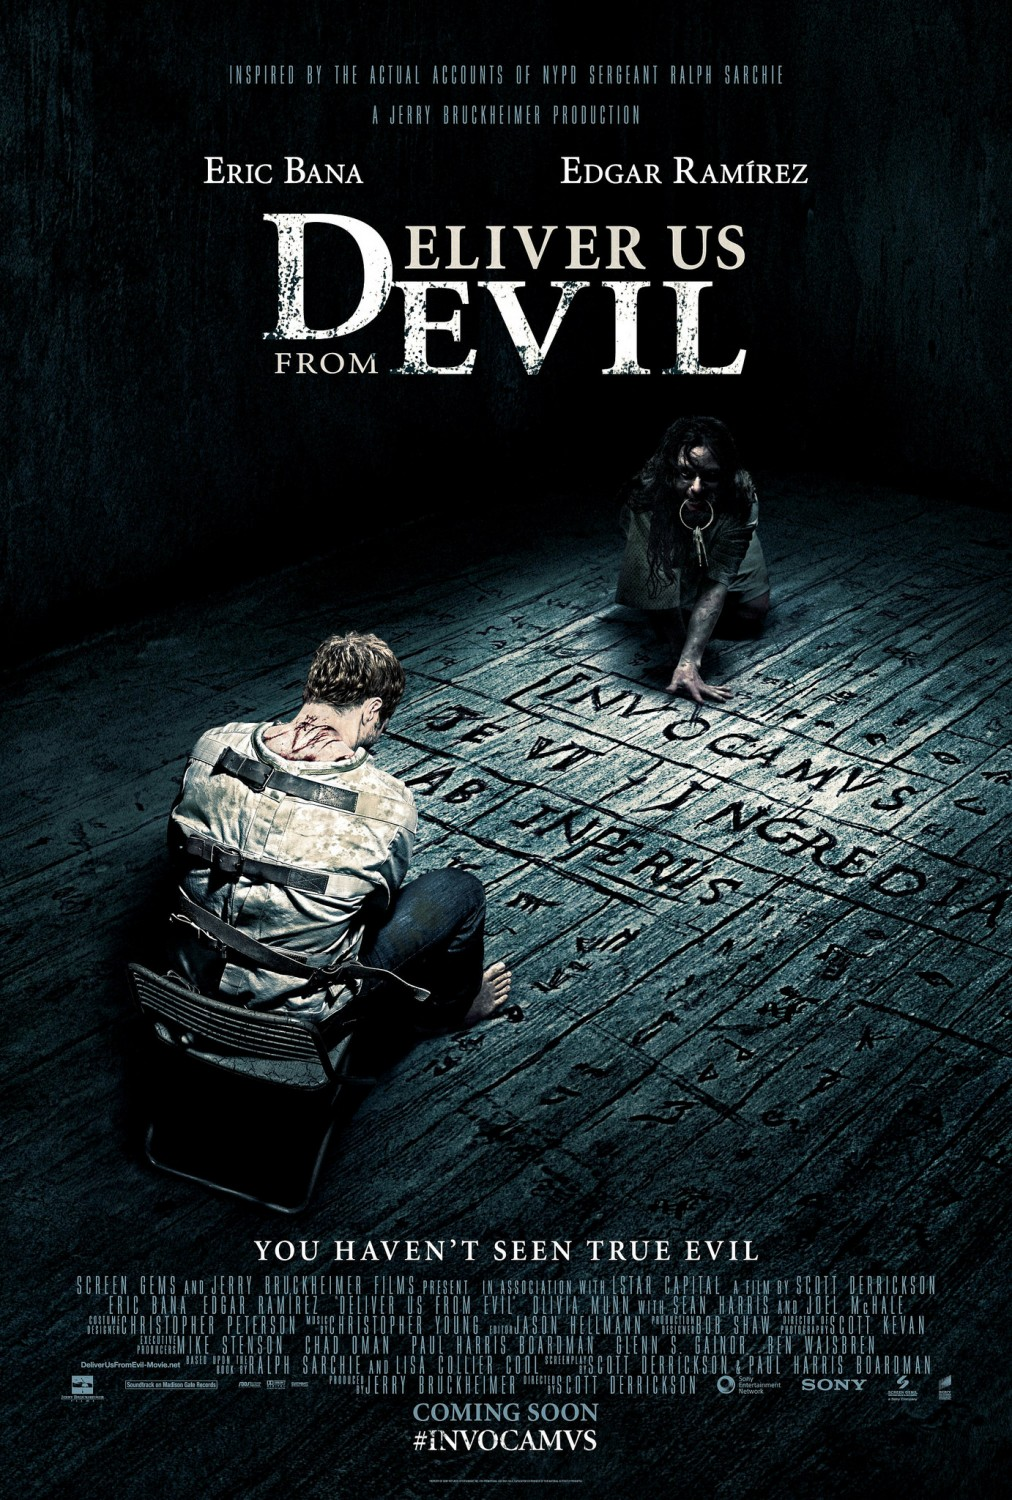 HD0270 - Deliver Us From Evil 2014 - Linh hồn báo thù